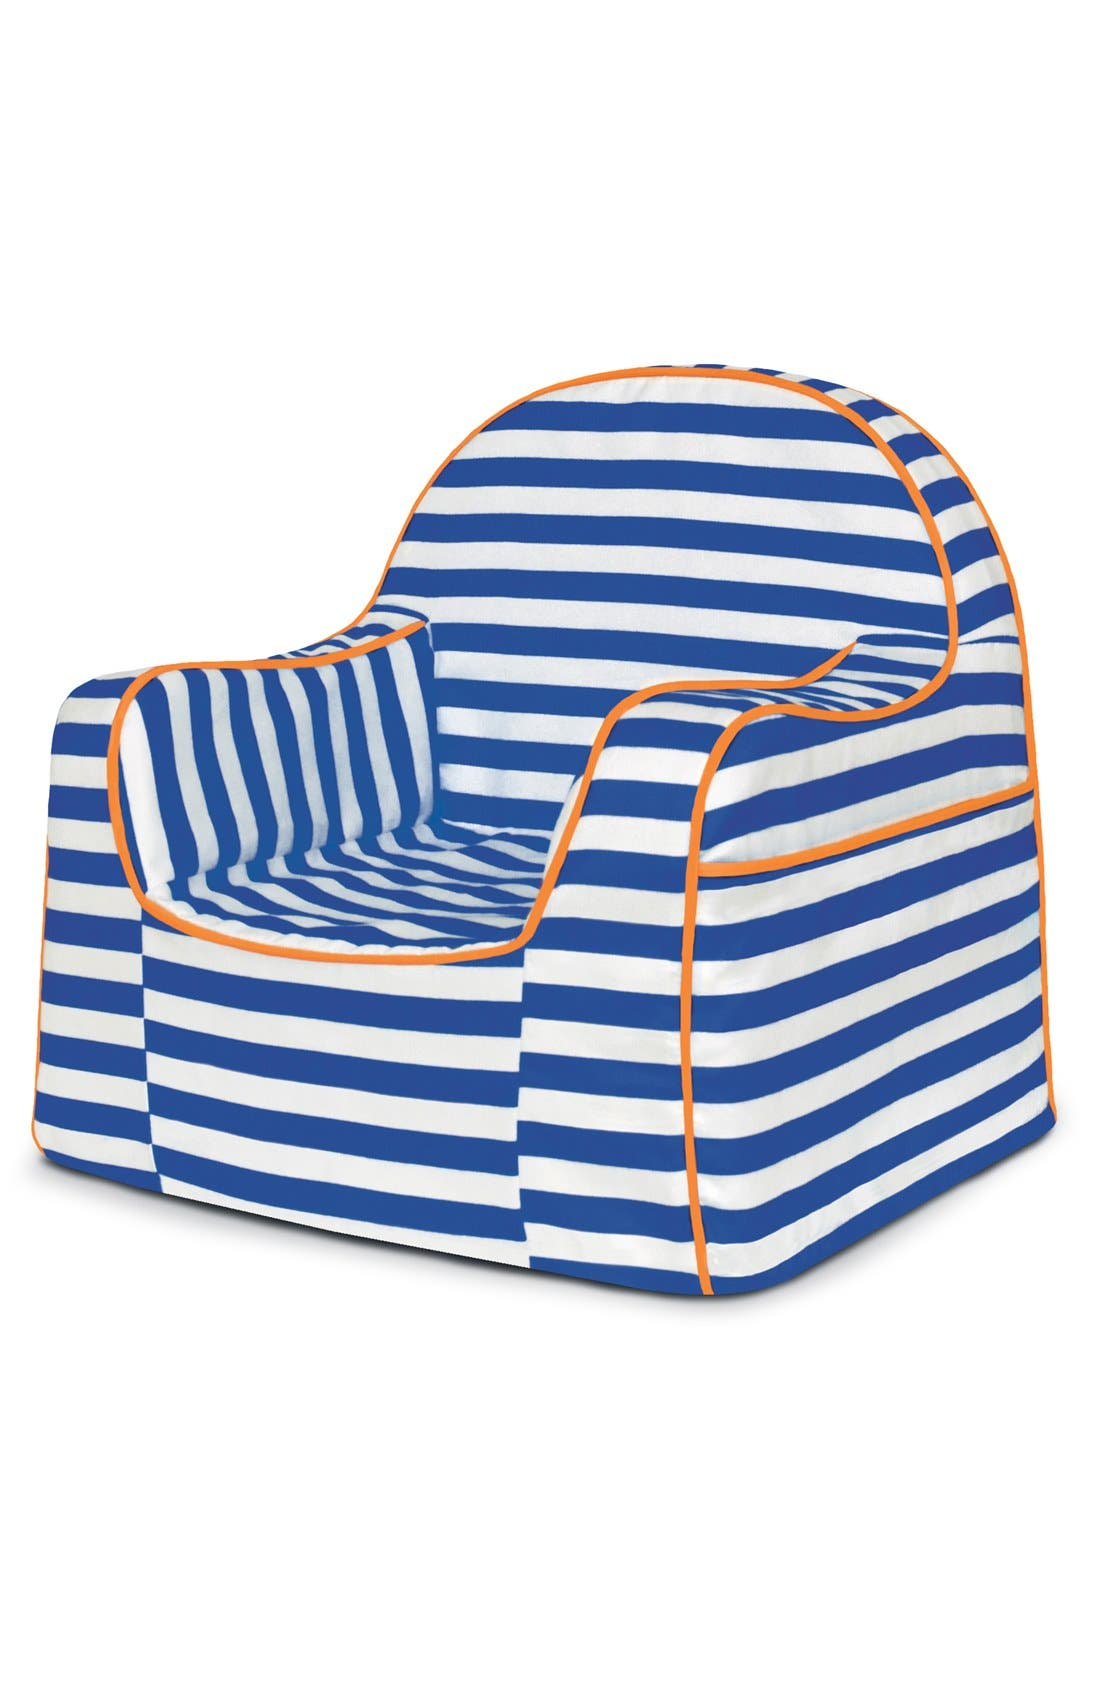 'Personalized Little Reader' Chair,                             Alternate thumbnail 6, color,                             405